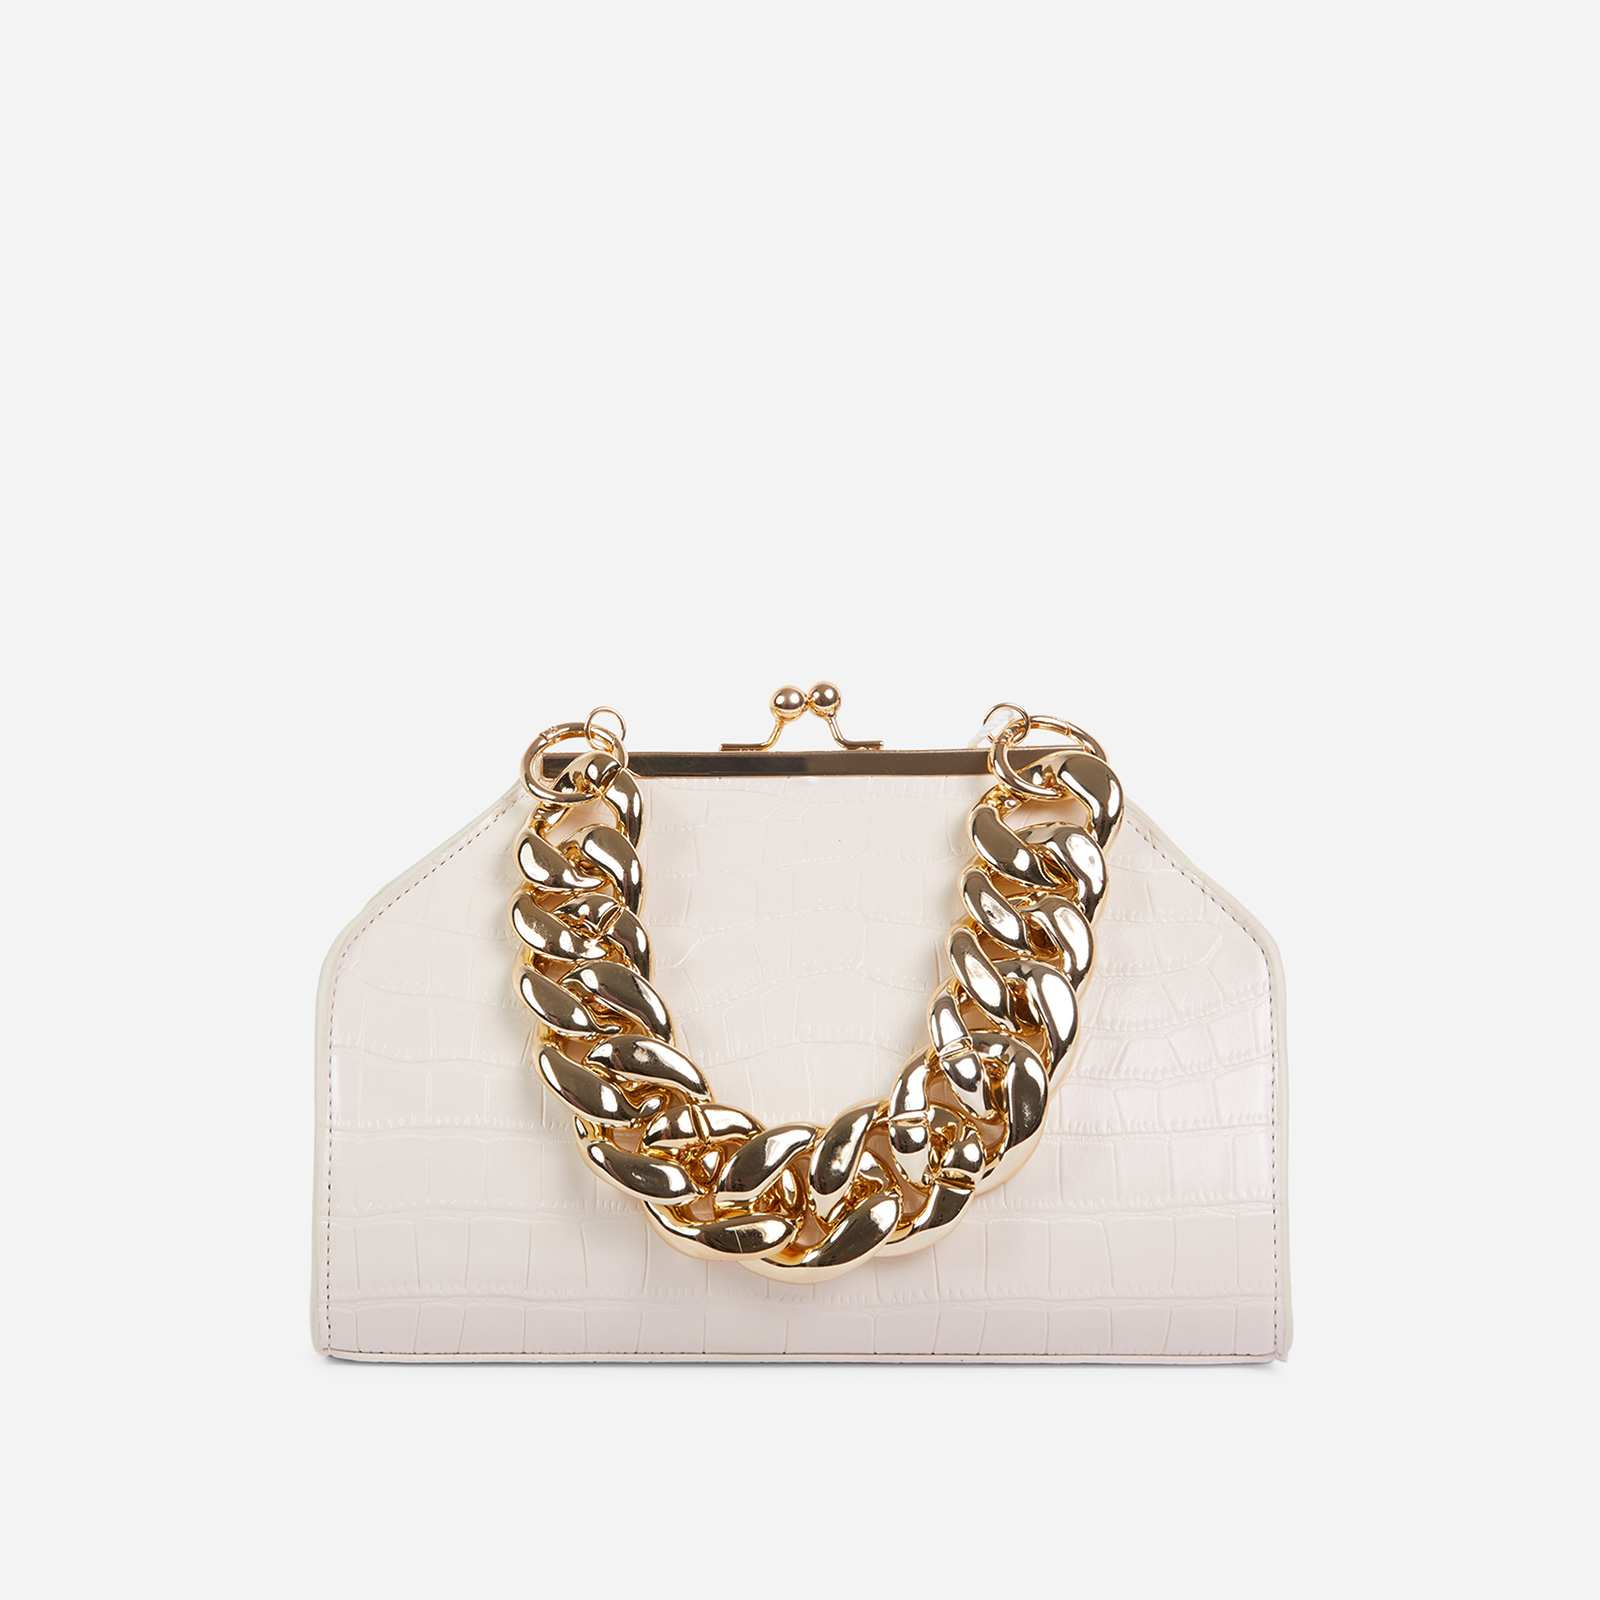 Tuco Chunky Chain Detail Boxy Grab Bag In White Croc Patent